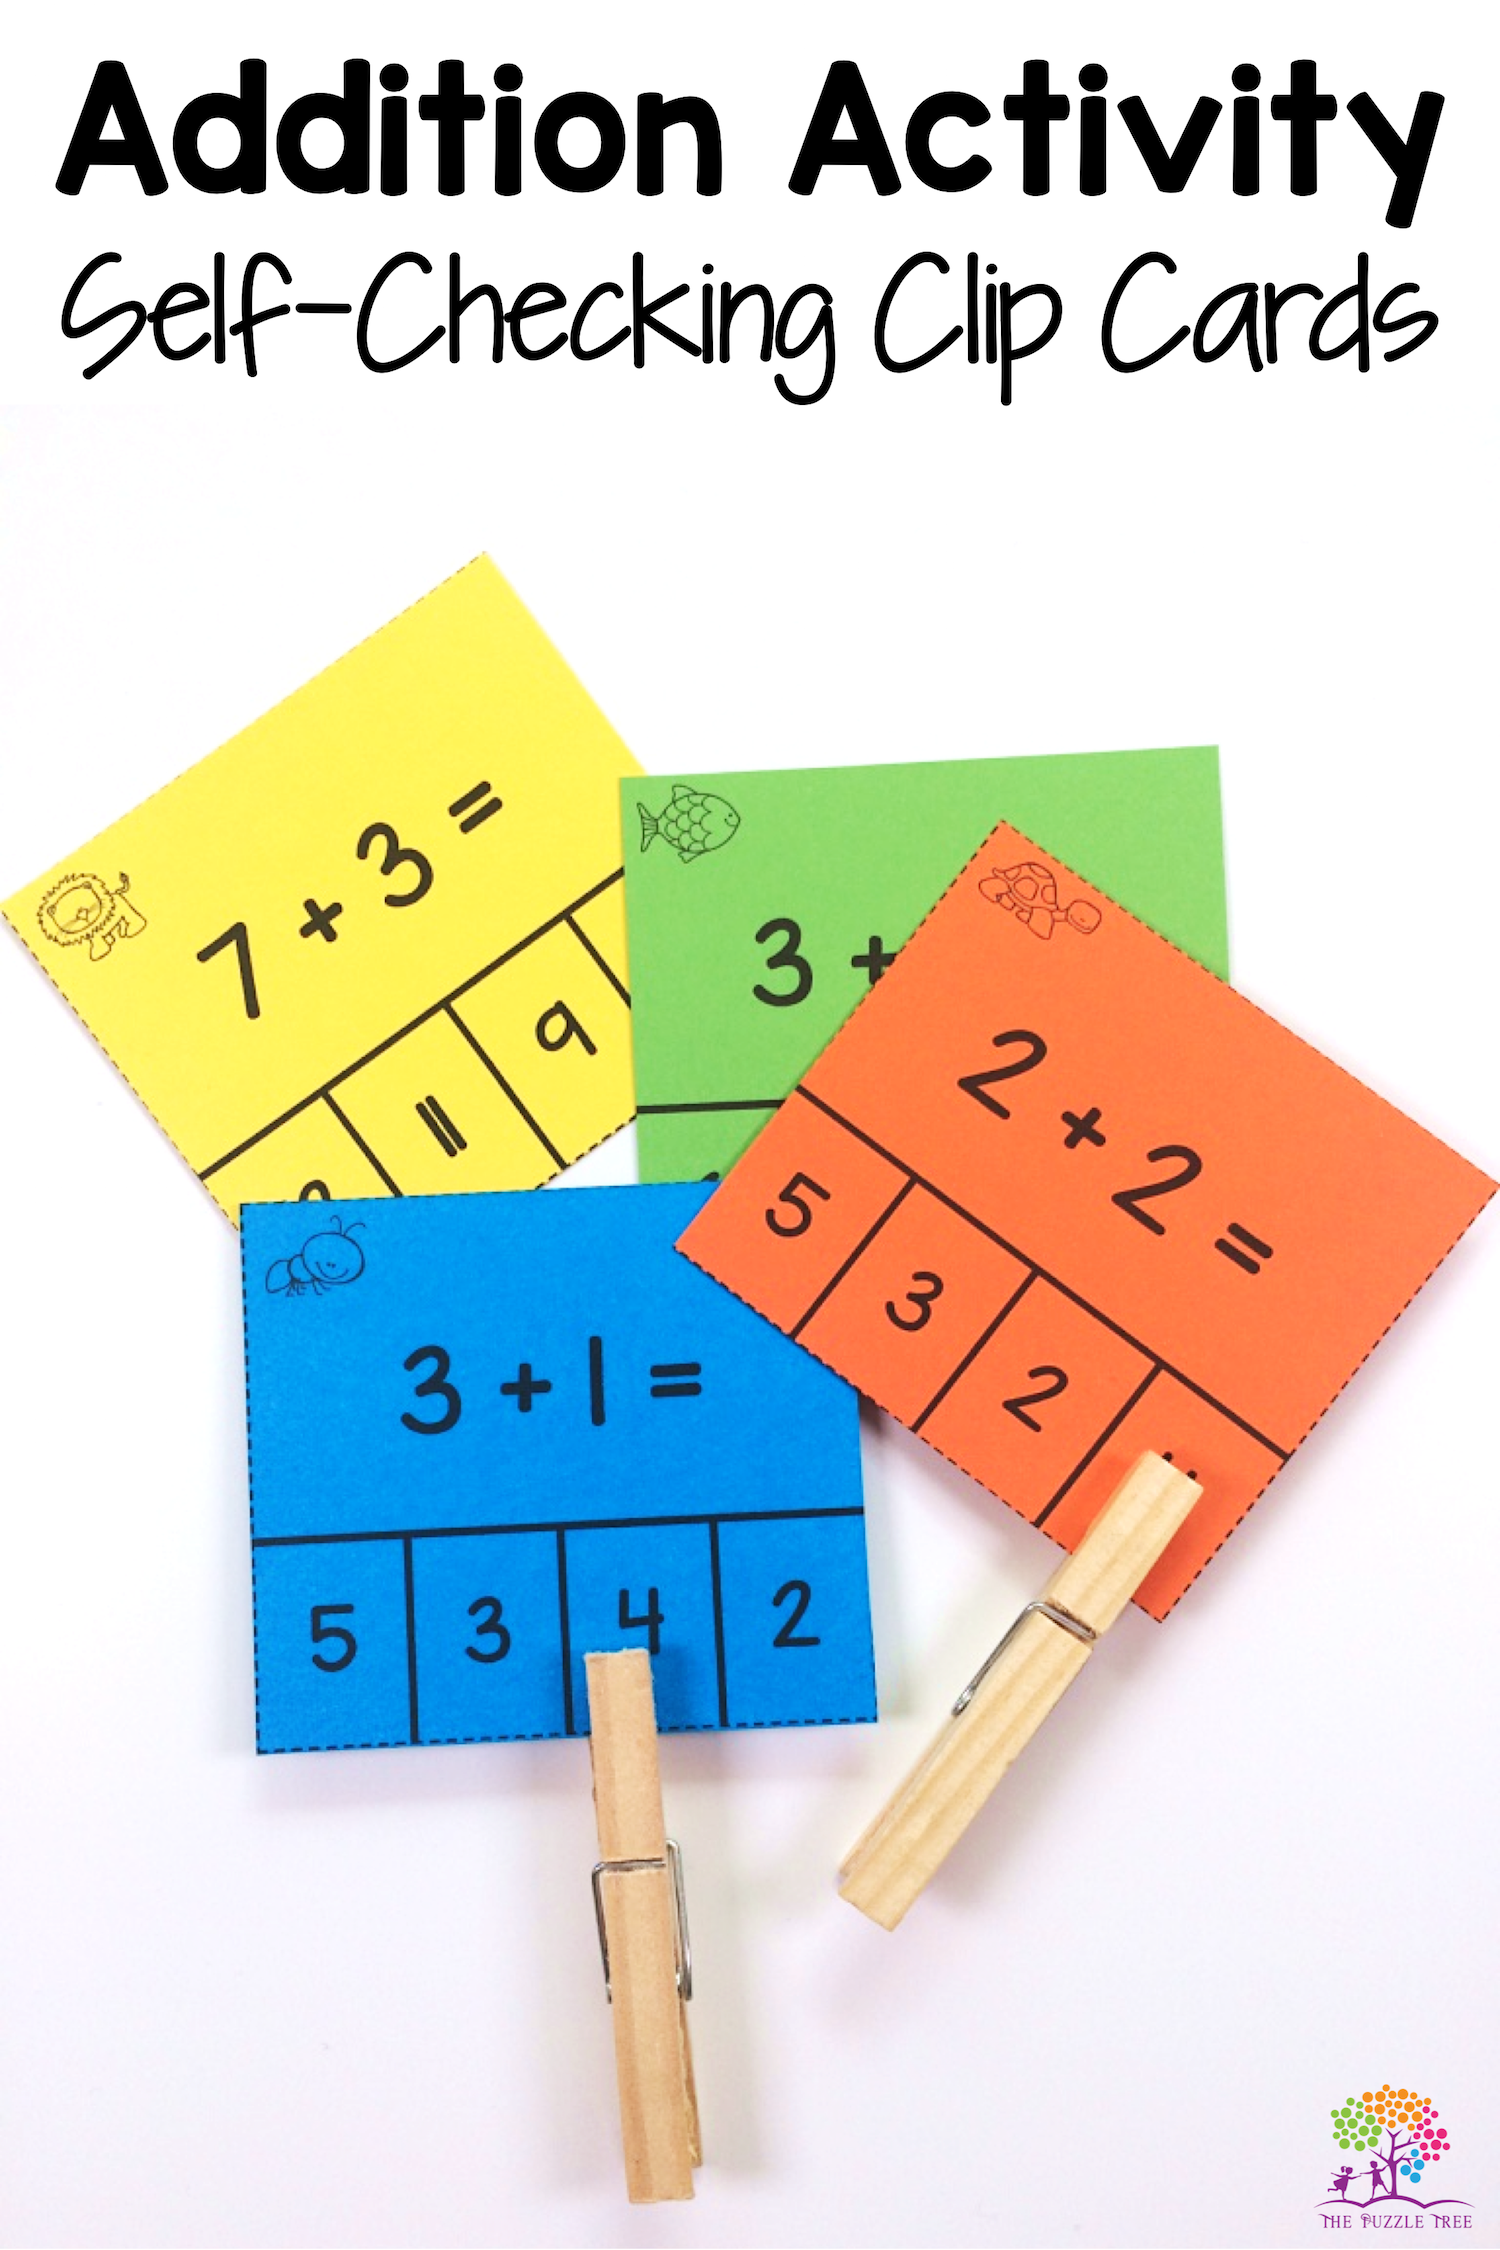 Addition Clip Cards For Teaching And Revising Basic